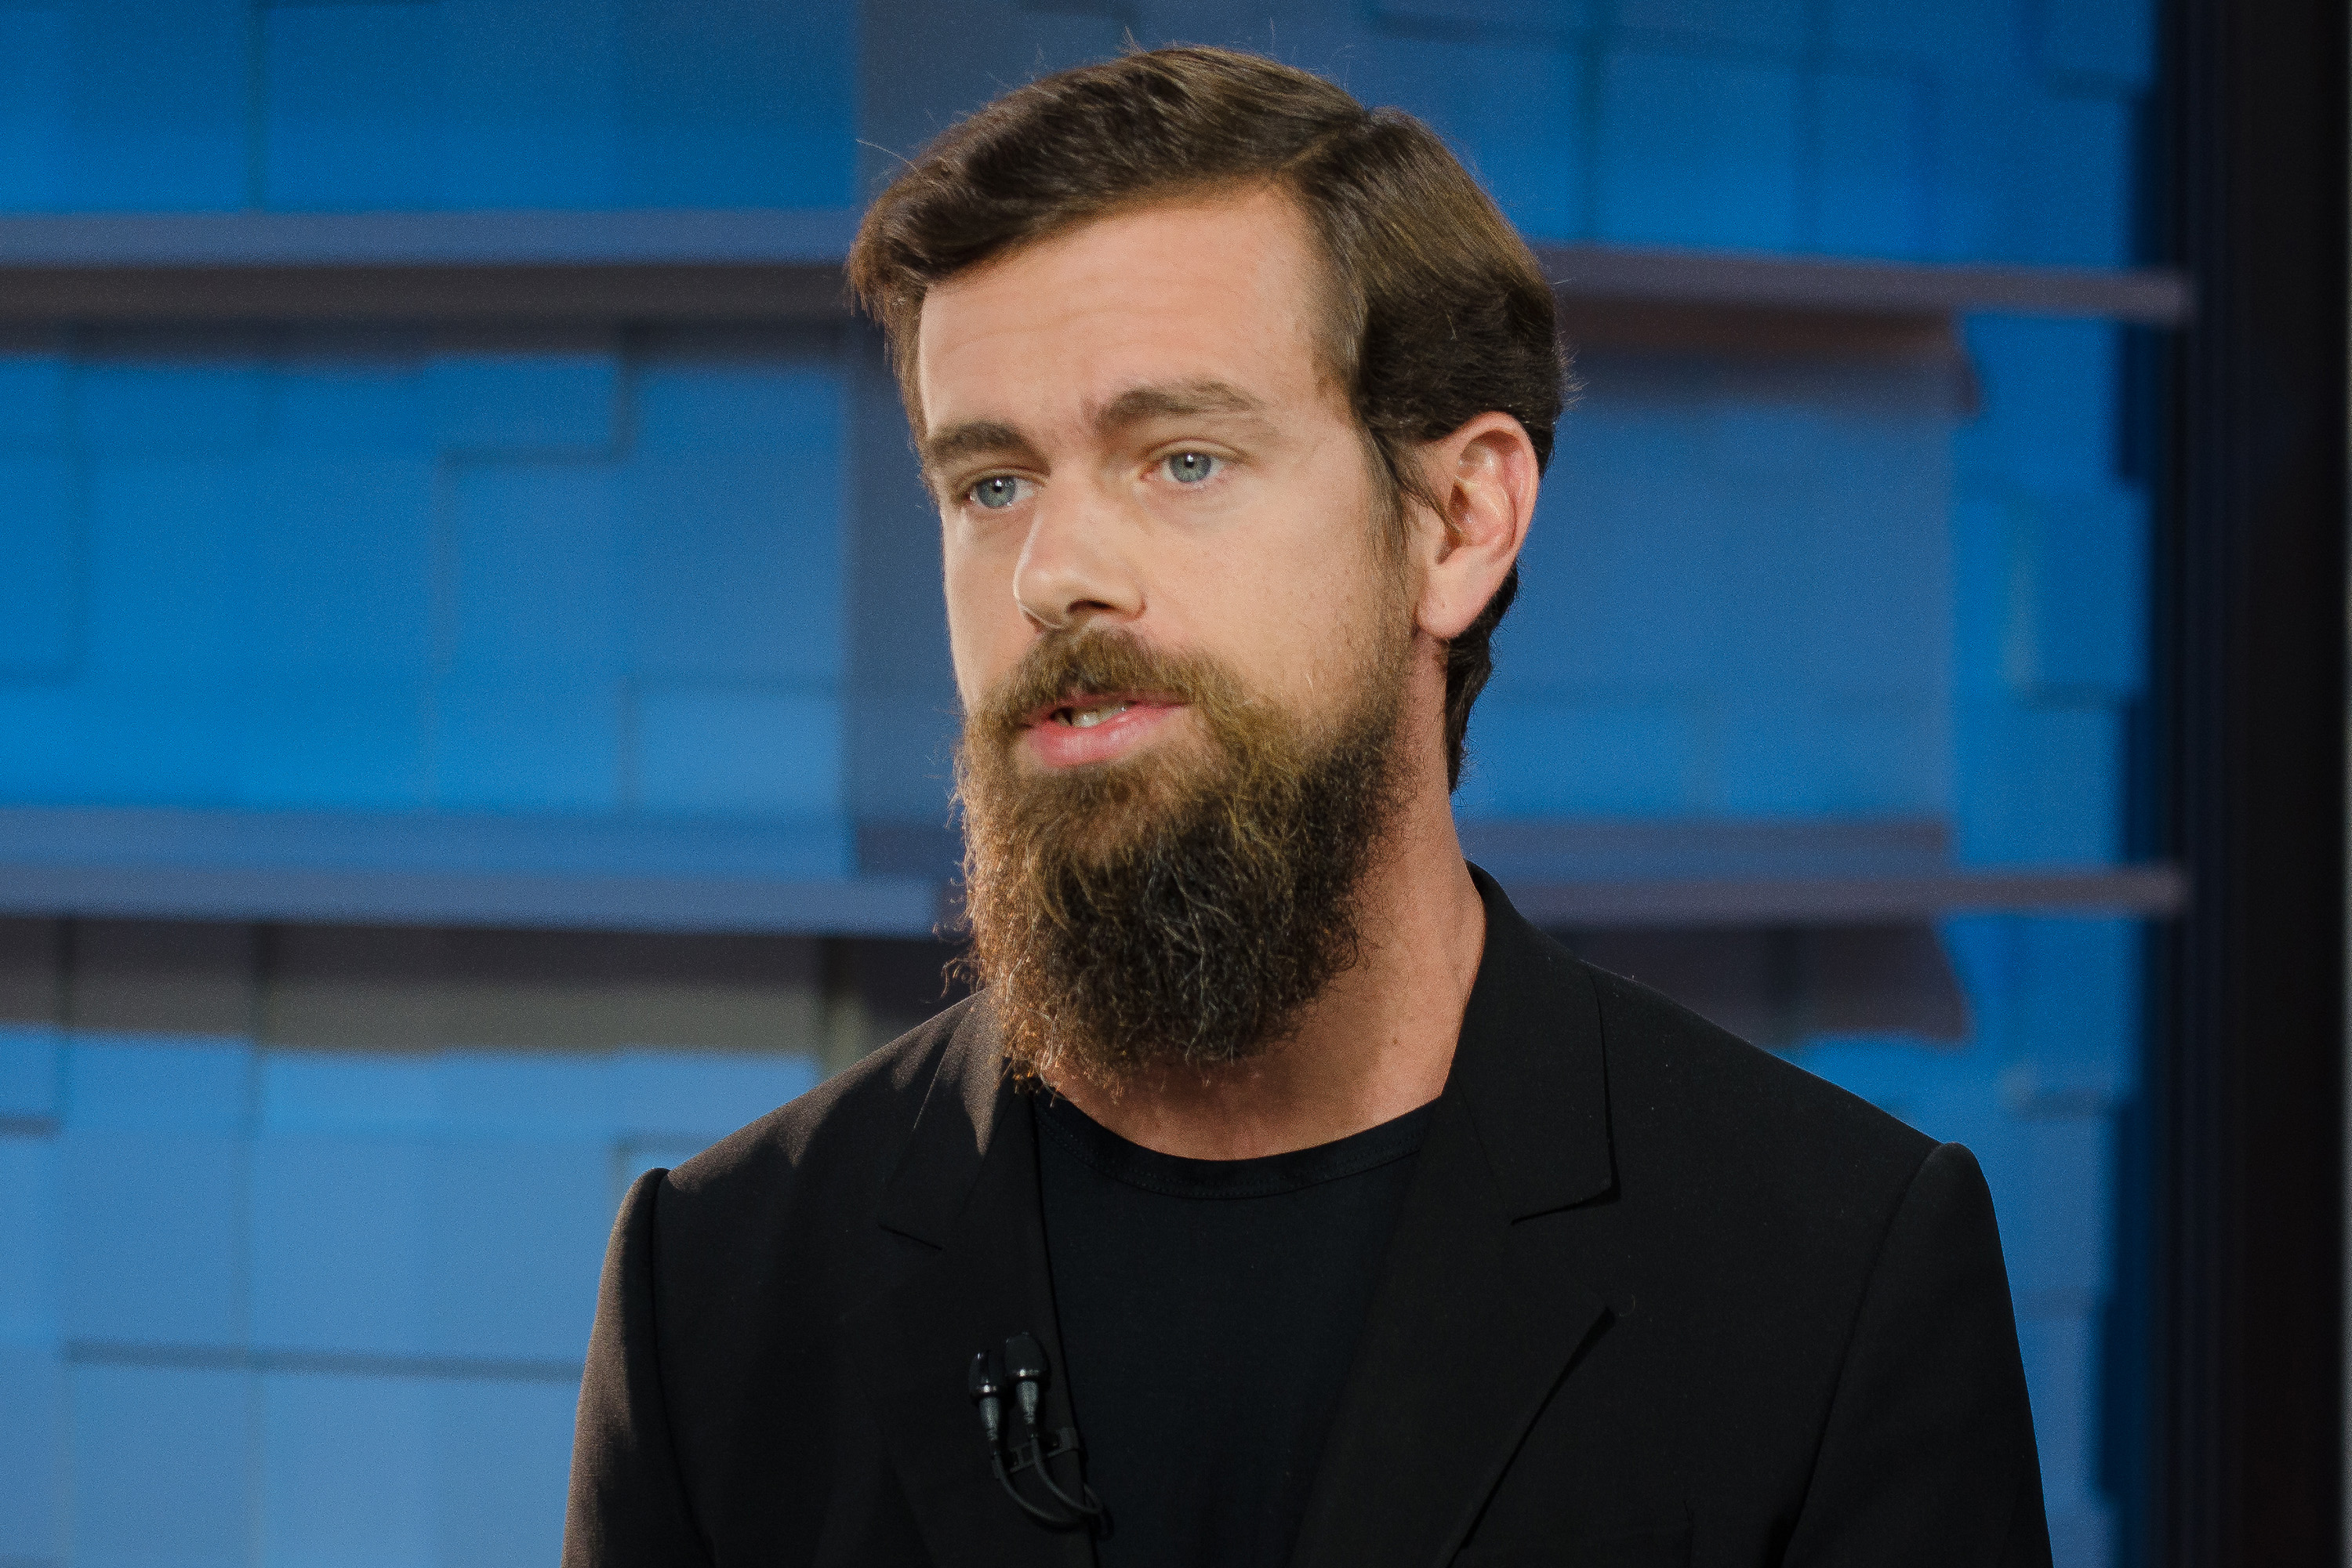 Jack Dorsey, co-founder of Twitter, and just-named interim CEO of Twitter, in an interview at CNBC's San Francicso bureau, on June 12, 2015.